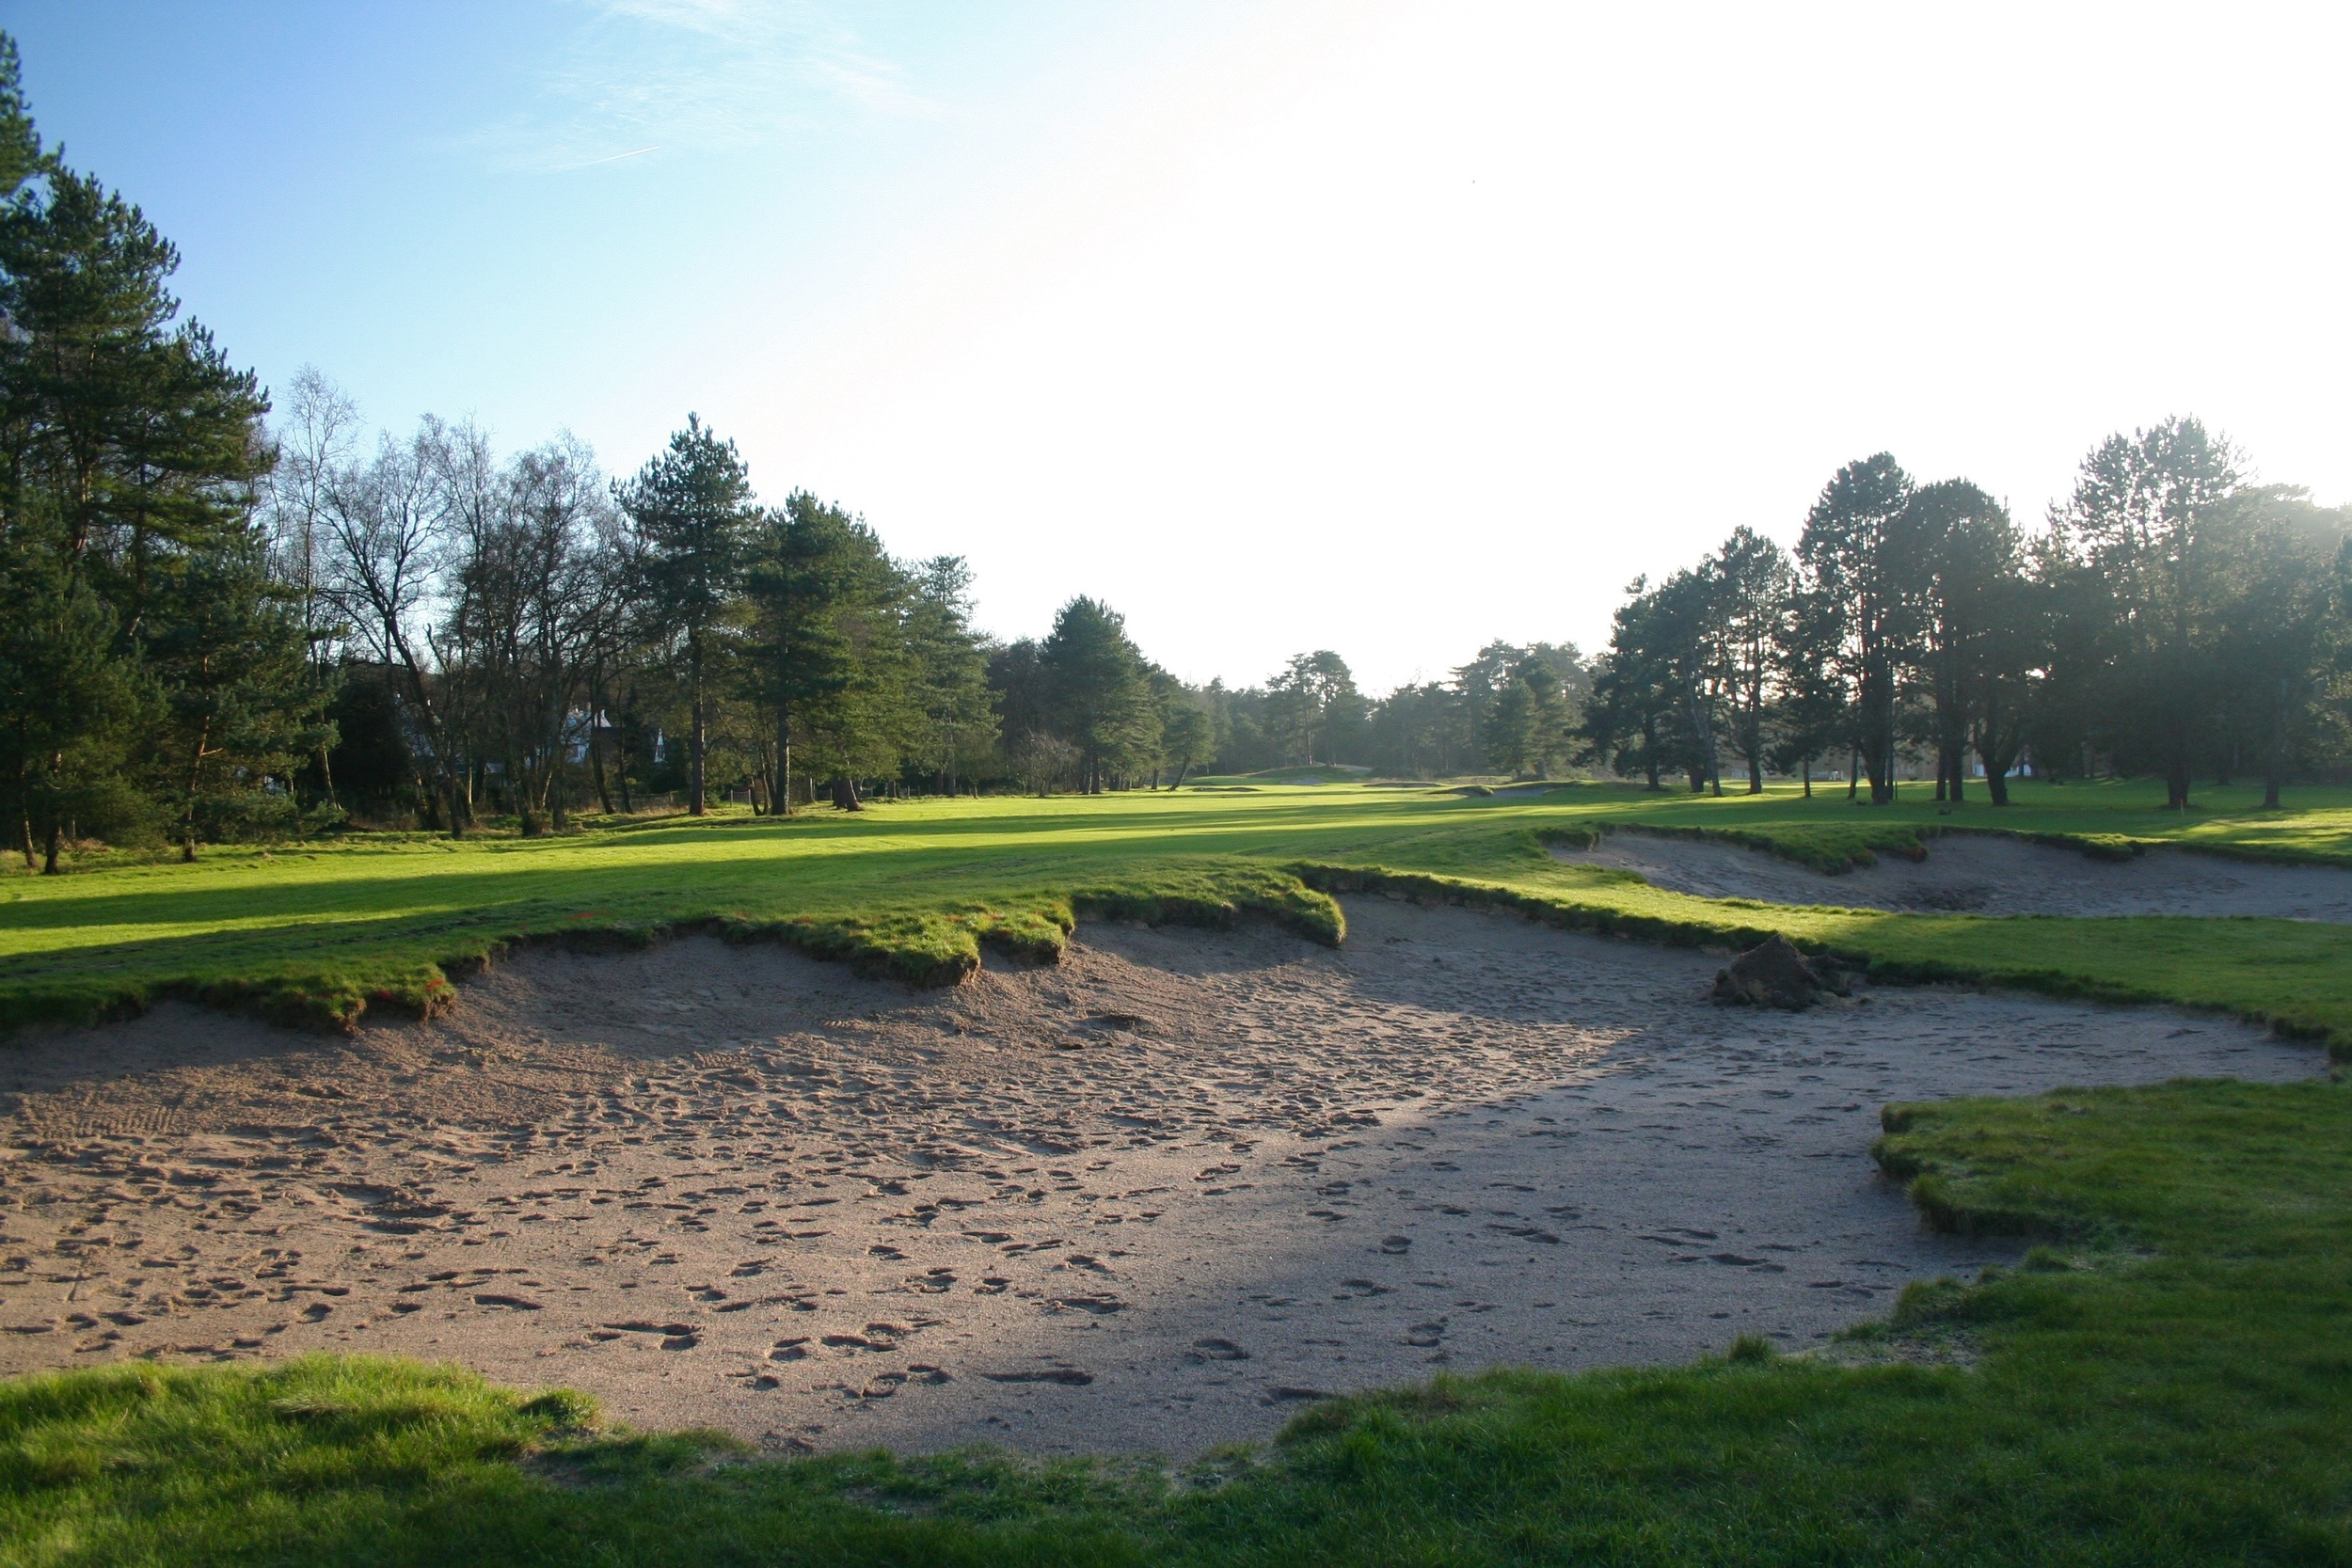 A combination of excavator and shovel work was used to make these once smooth revetted edges appear more like the original edge style used by Tom Simpson.